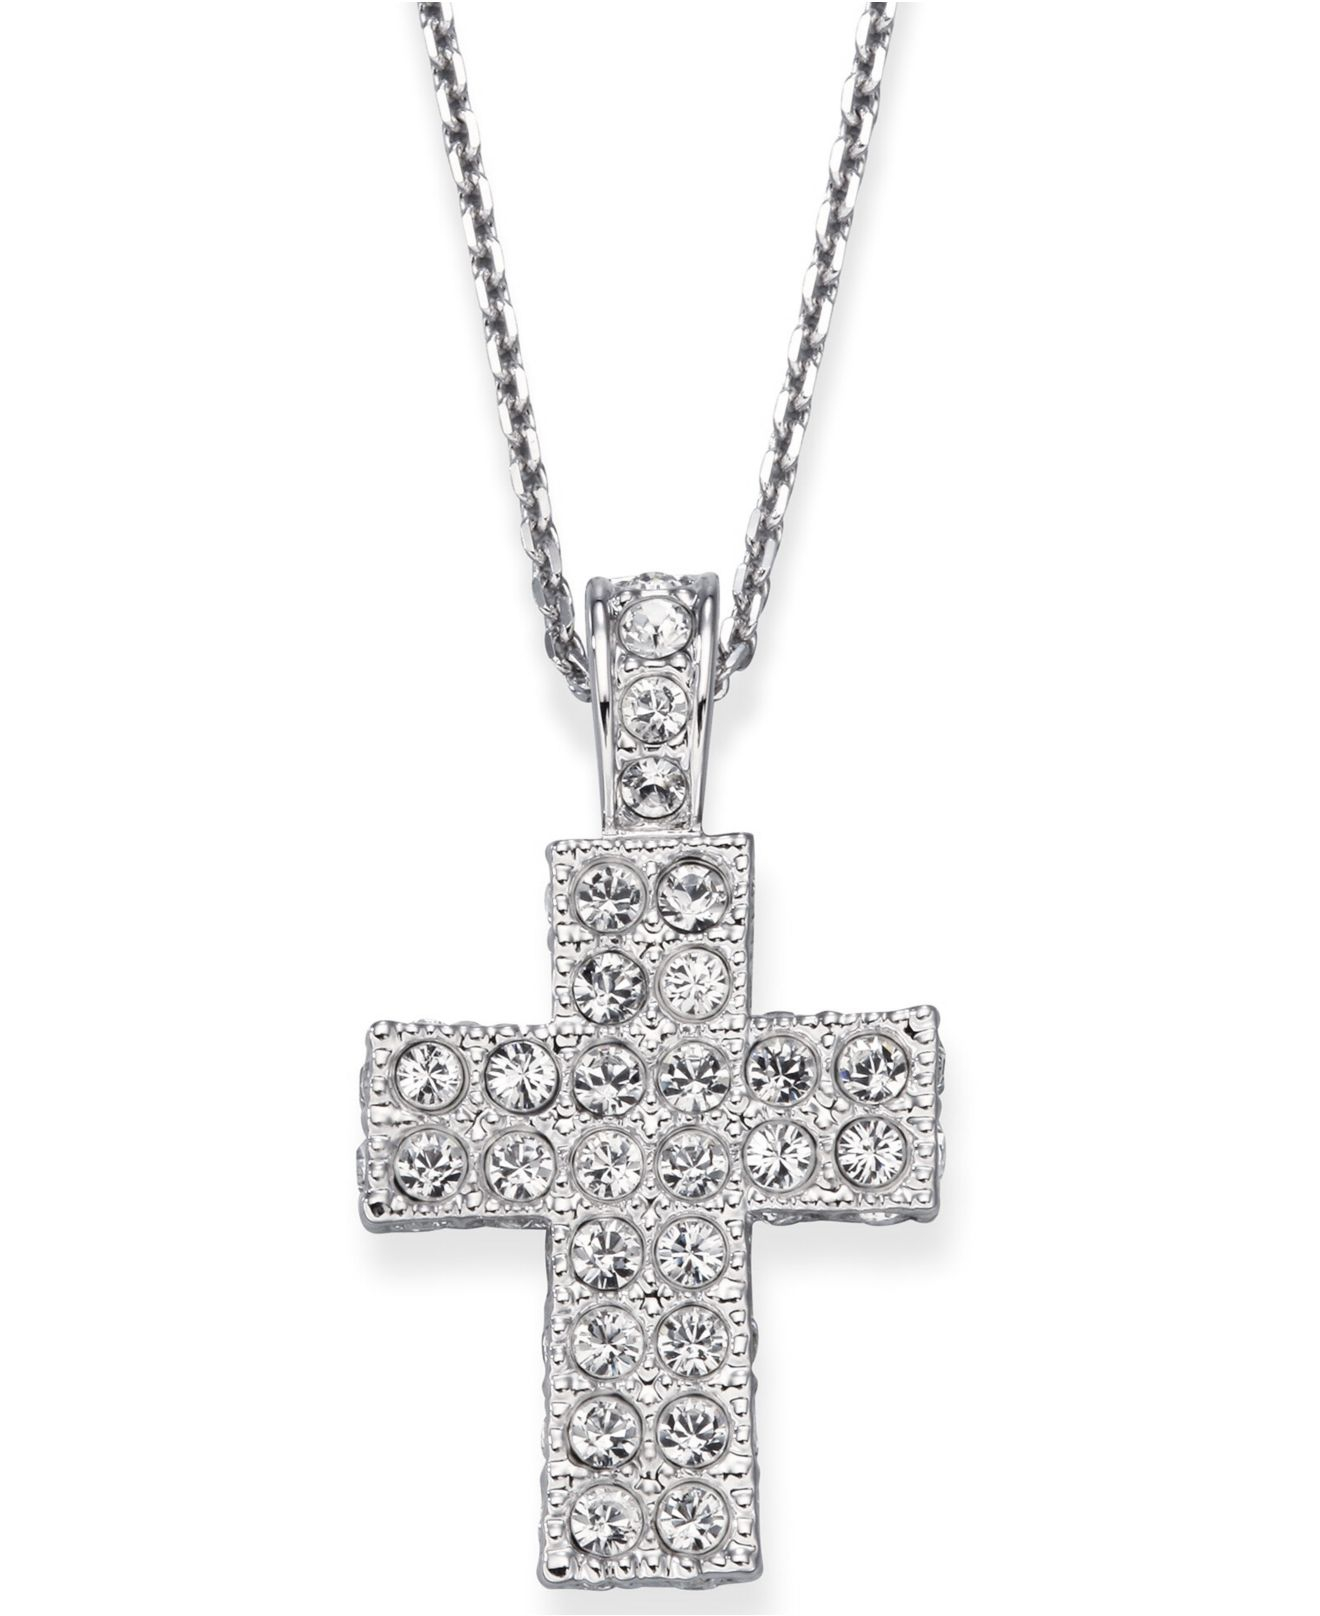 add64877c1 Gallery. Previously sold at: Macy's · Women's Swarovski Crystal Necklace